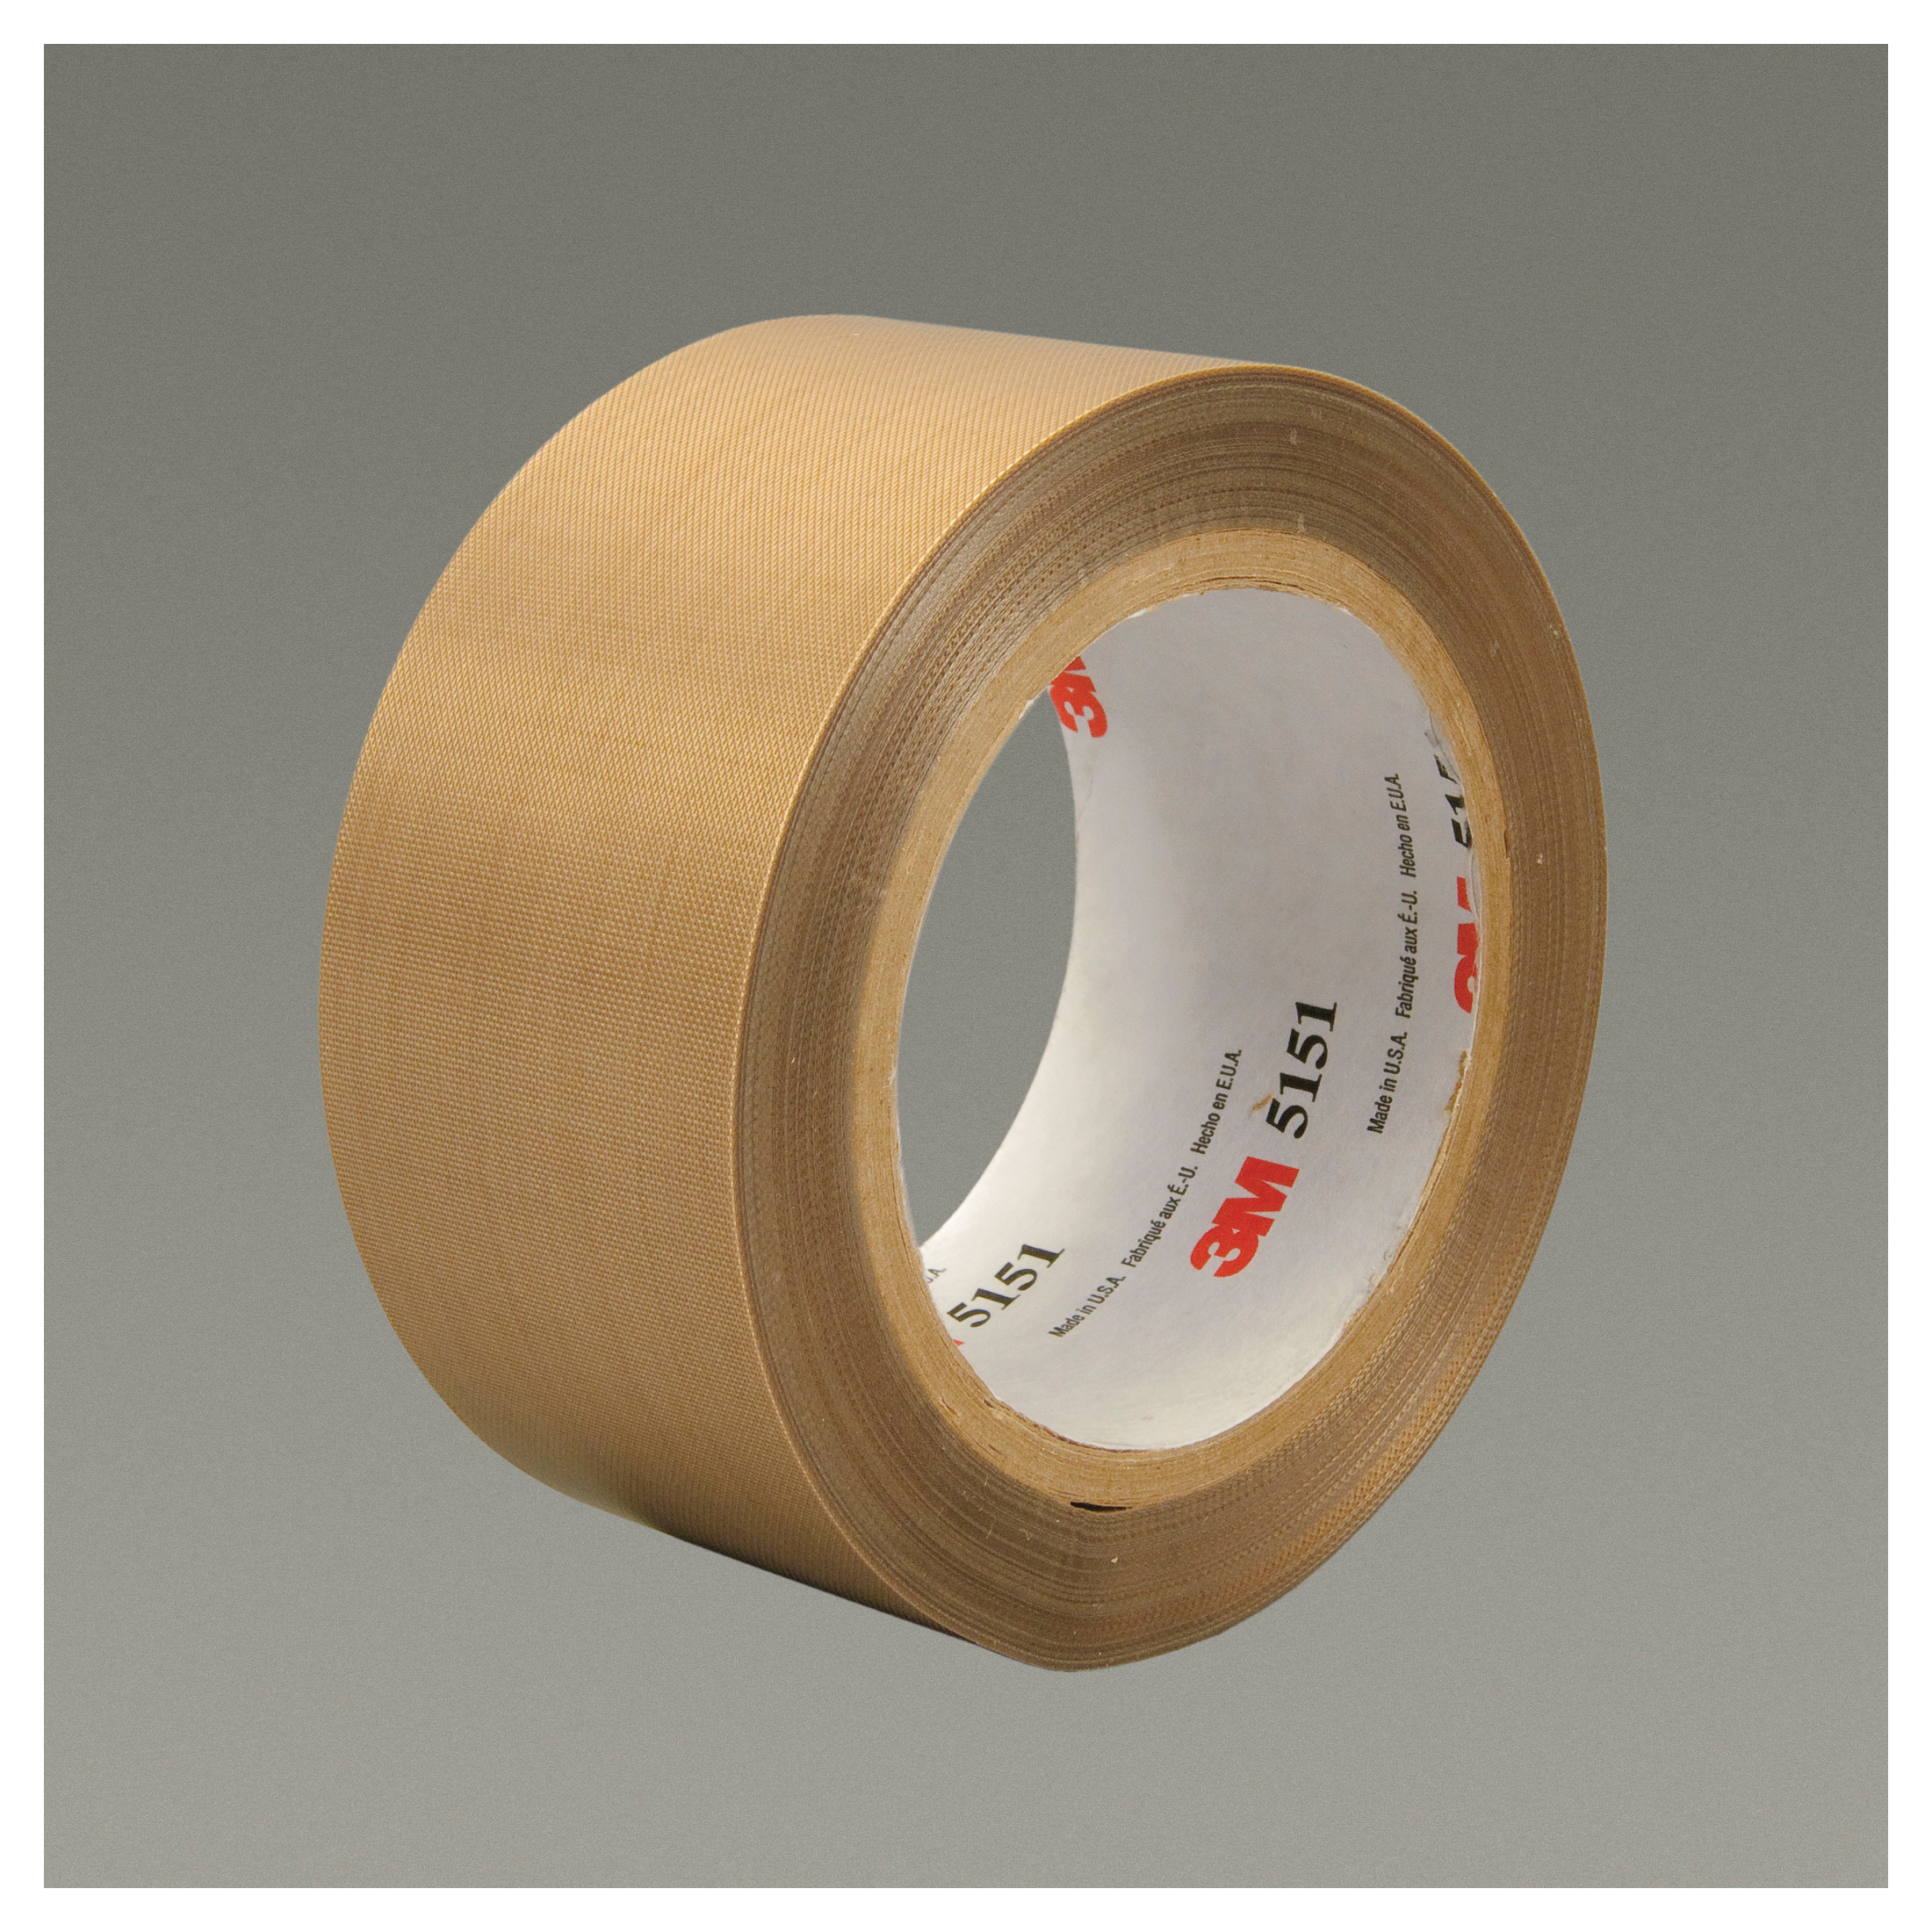 3M™ 021200-45631 General Purpose Glass Cloth Tape, 36 yd L x 1-1/2 in W, 5.3 mil THK, Silicon Adhesive, Glass Cloth Impregnated with PTFE Backing, Light Brown